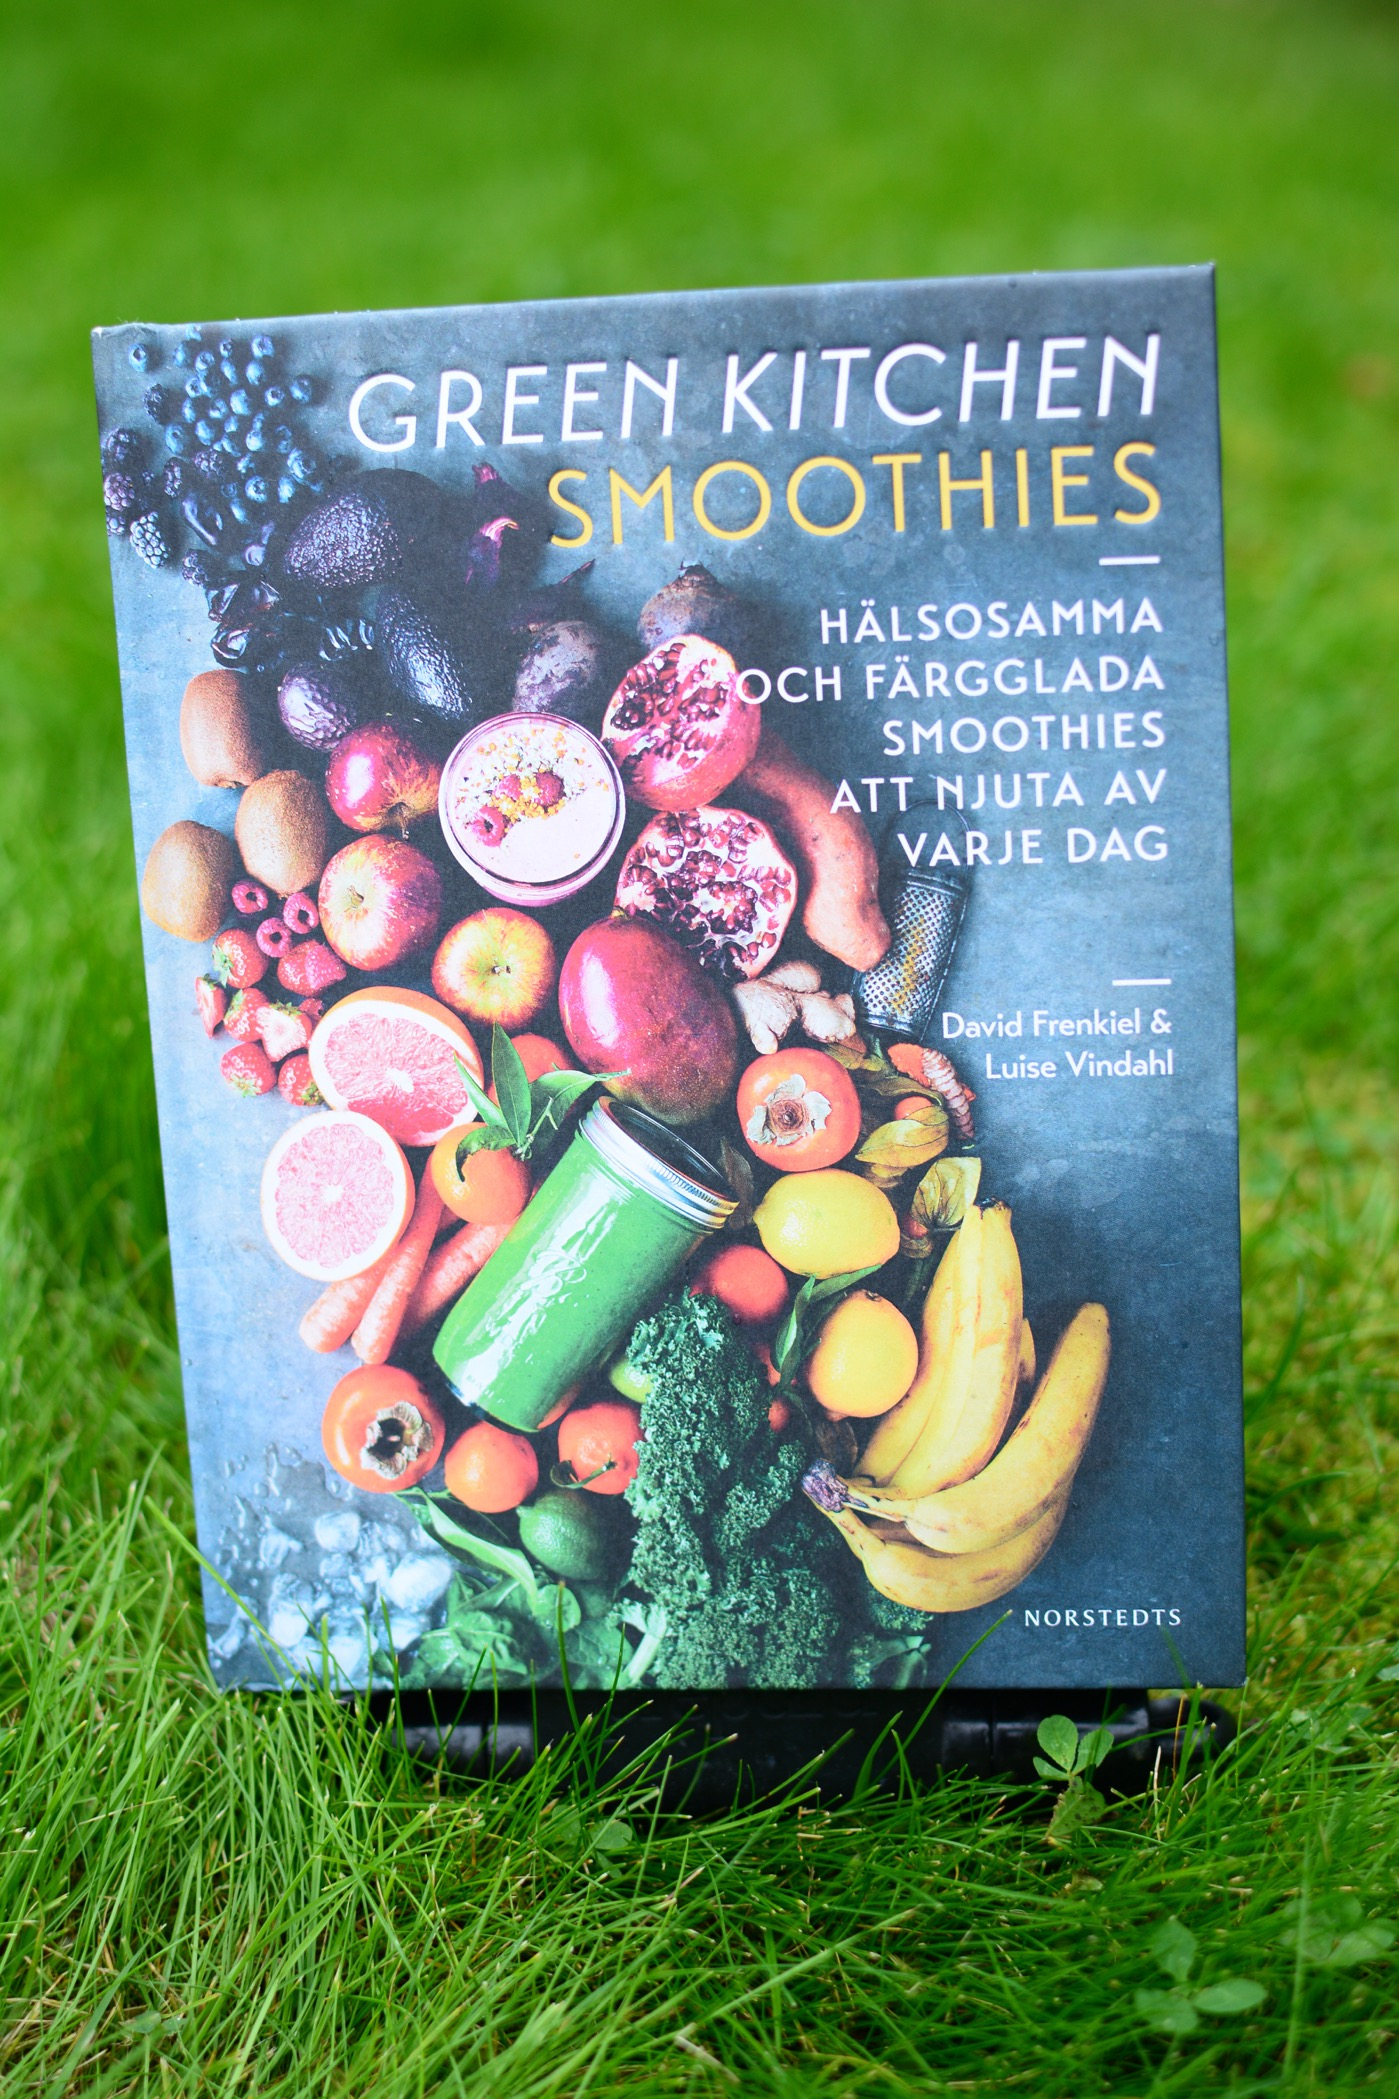 Green Kitchen Smoothies, Green Kitchen Stories, Norstedts